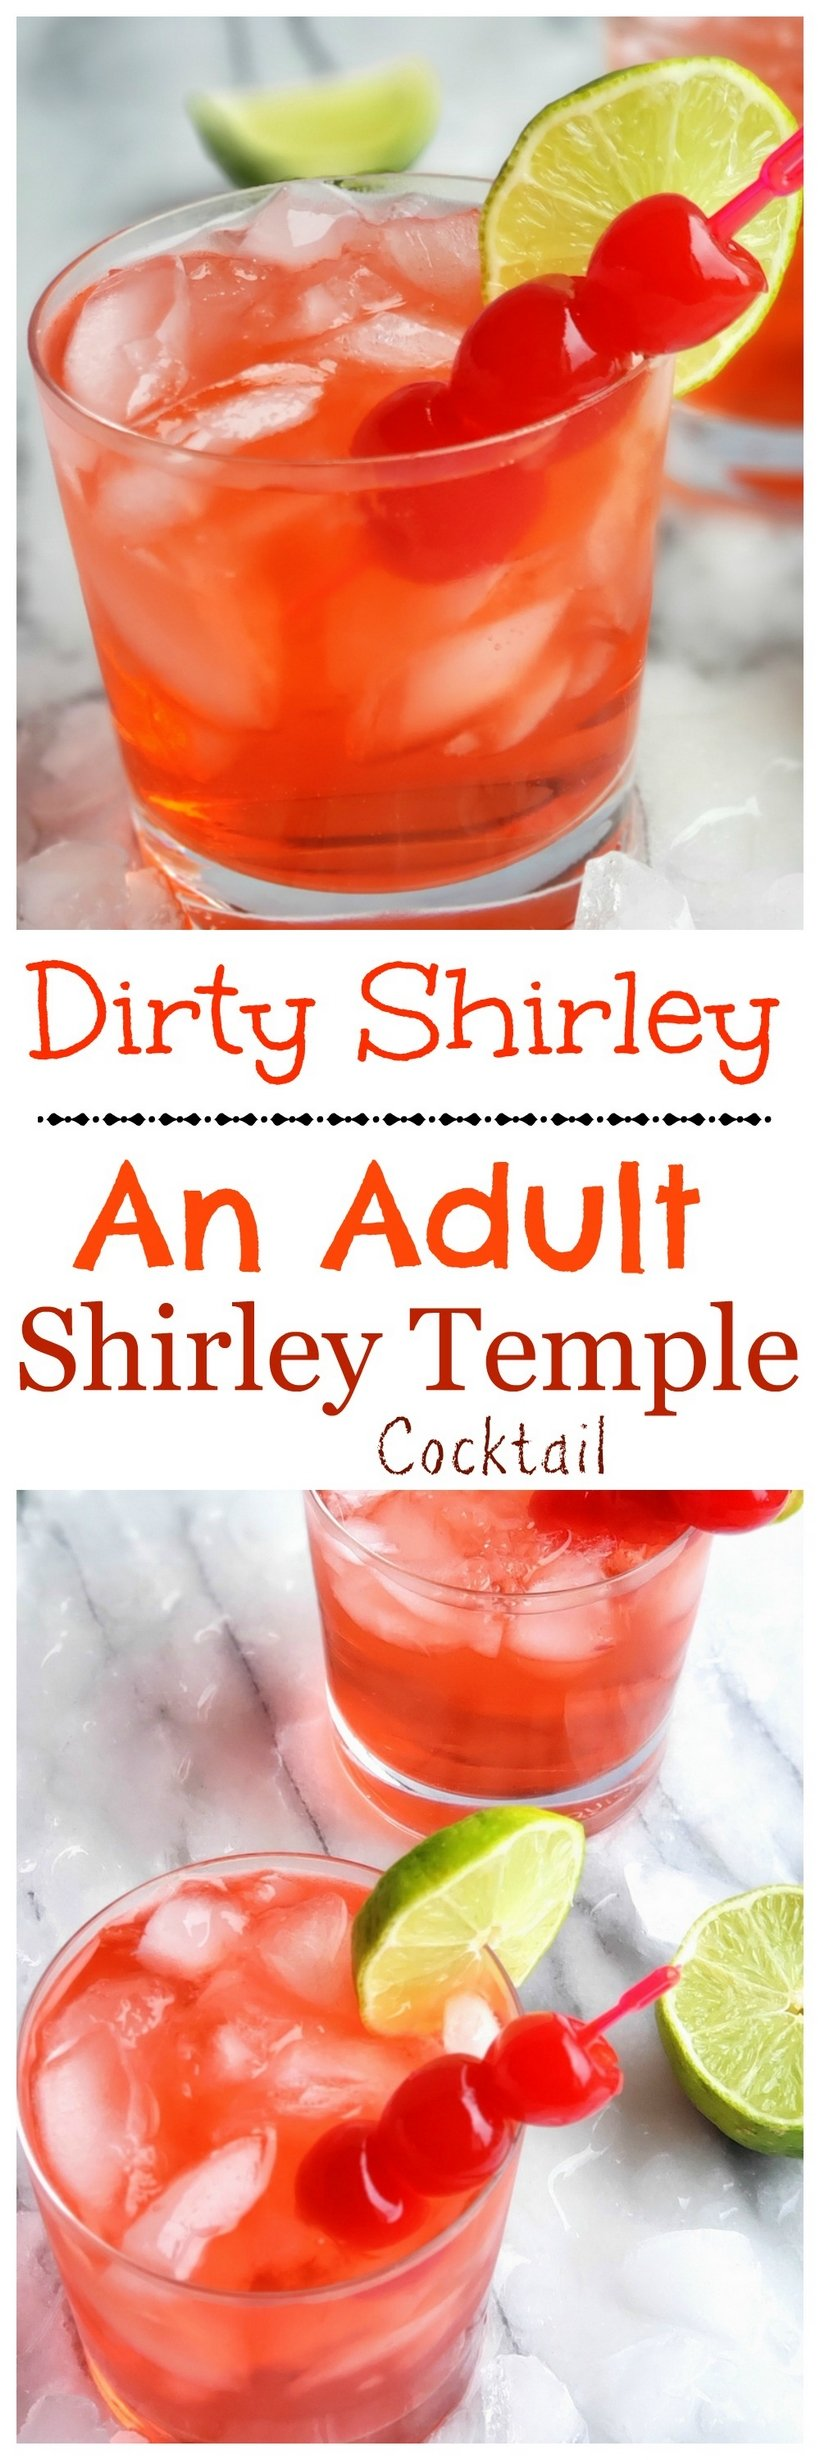 Two images of The Dirty Shirley cocktail in rocks glasses on ice with text overlay that reads, dirty shirley, an adult shirley temple cocktail